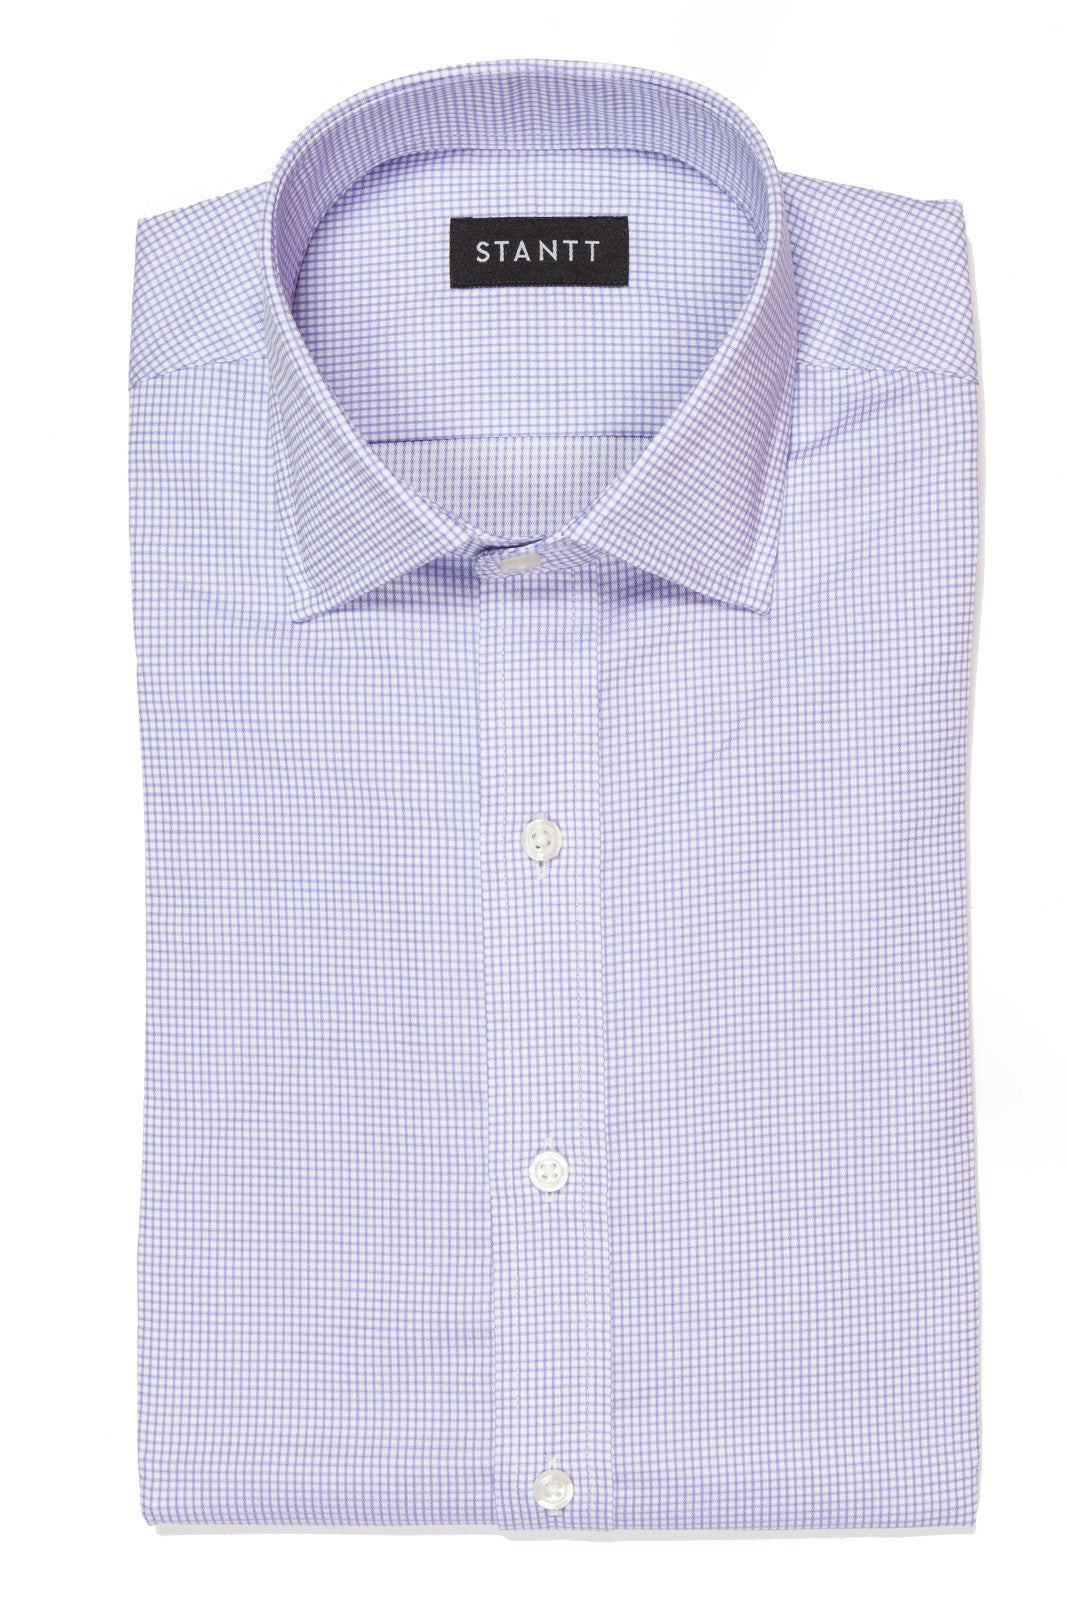 Wrinkle-Resistant Purple Accented Mini-Check: Cutaway Collar, Barrel Cuff